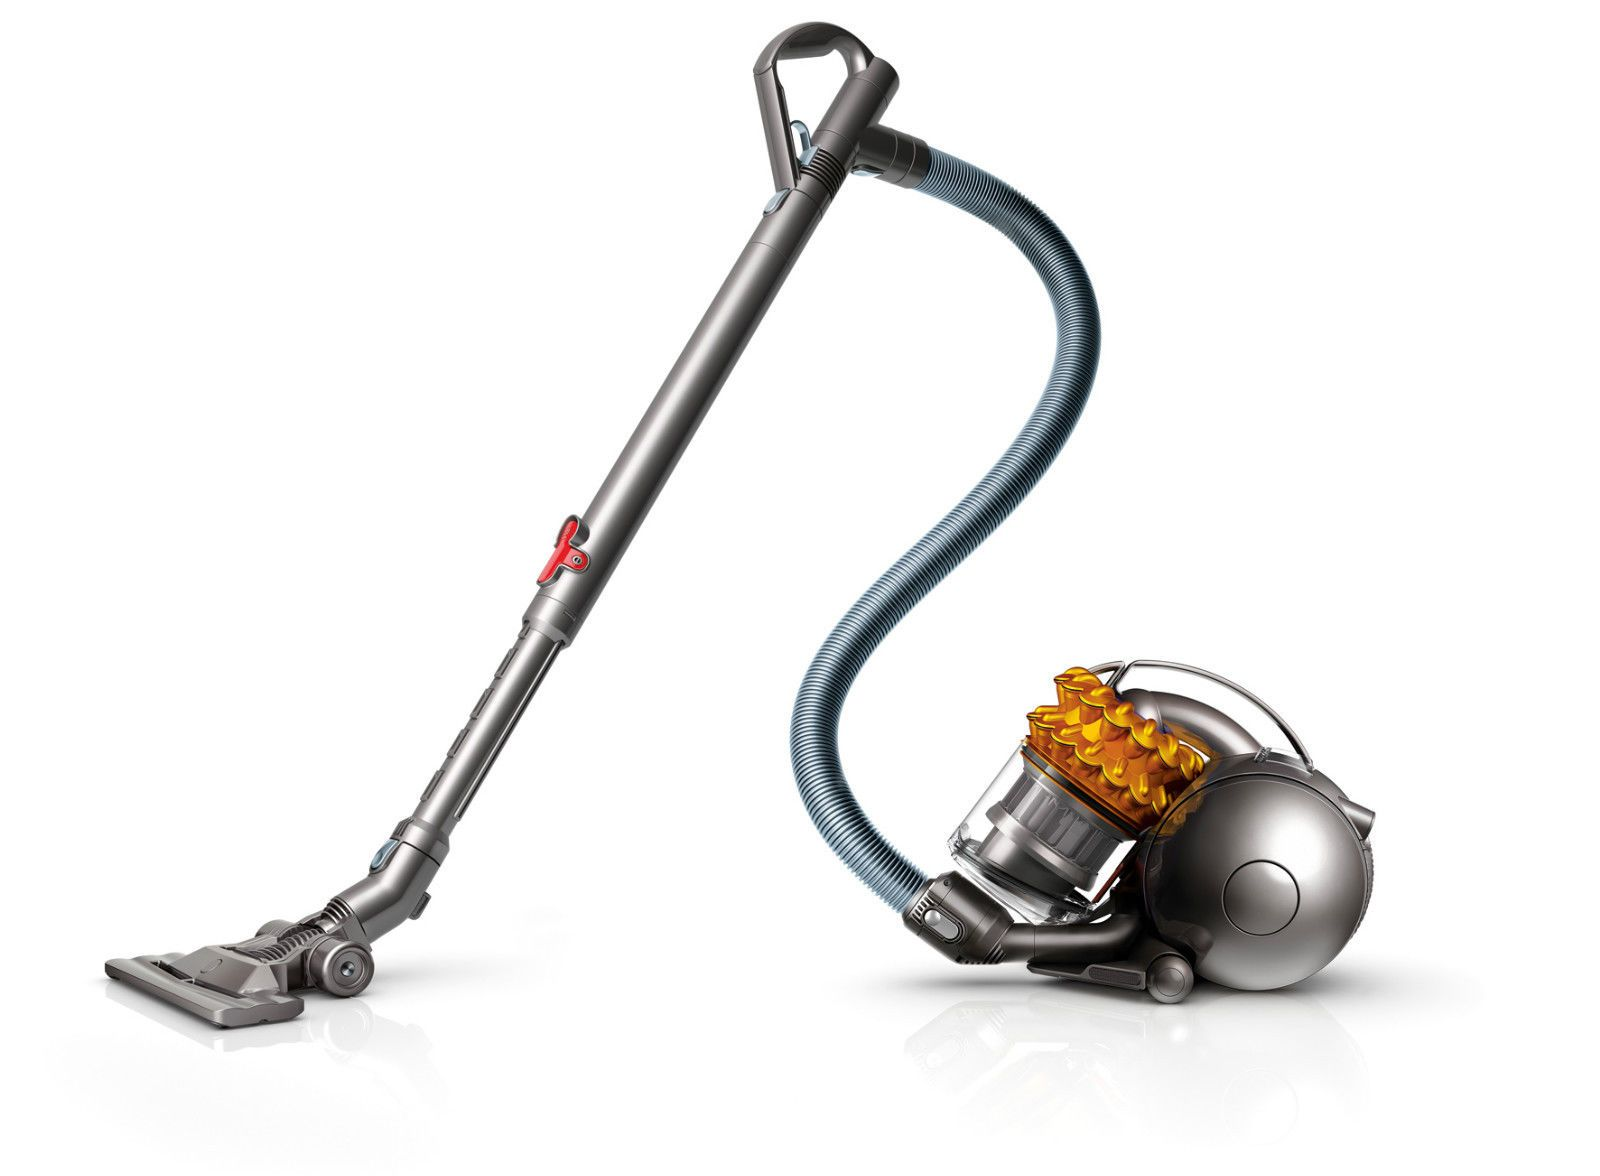 e2dd64ca4e3 BARGAIN Dyson DC47 Multi Floor complete vacuum cleaner with 5 year guarantee  was £319.99 NOW £160 at Dyson Outlet (eBay) - Gratisfaction UK